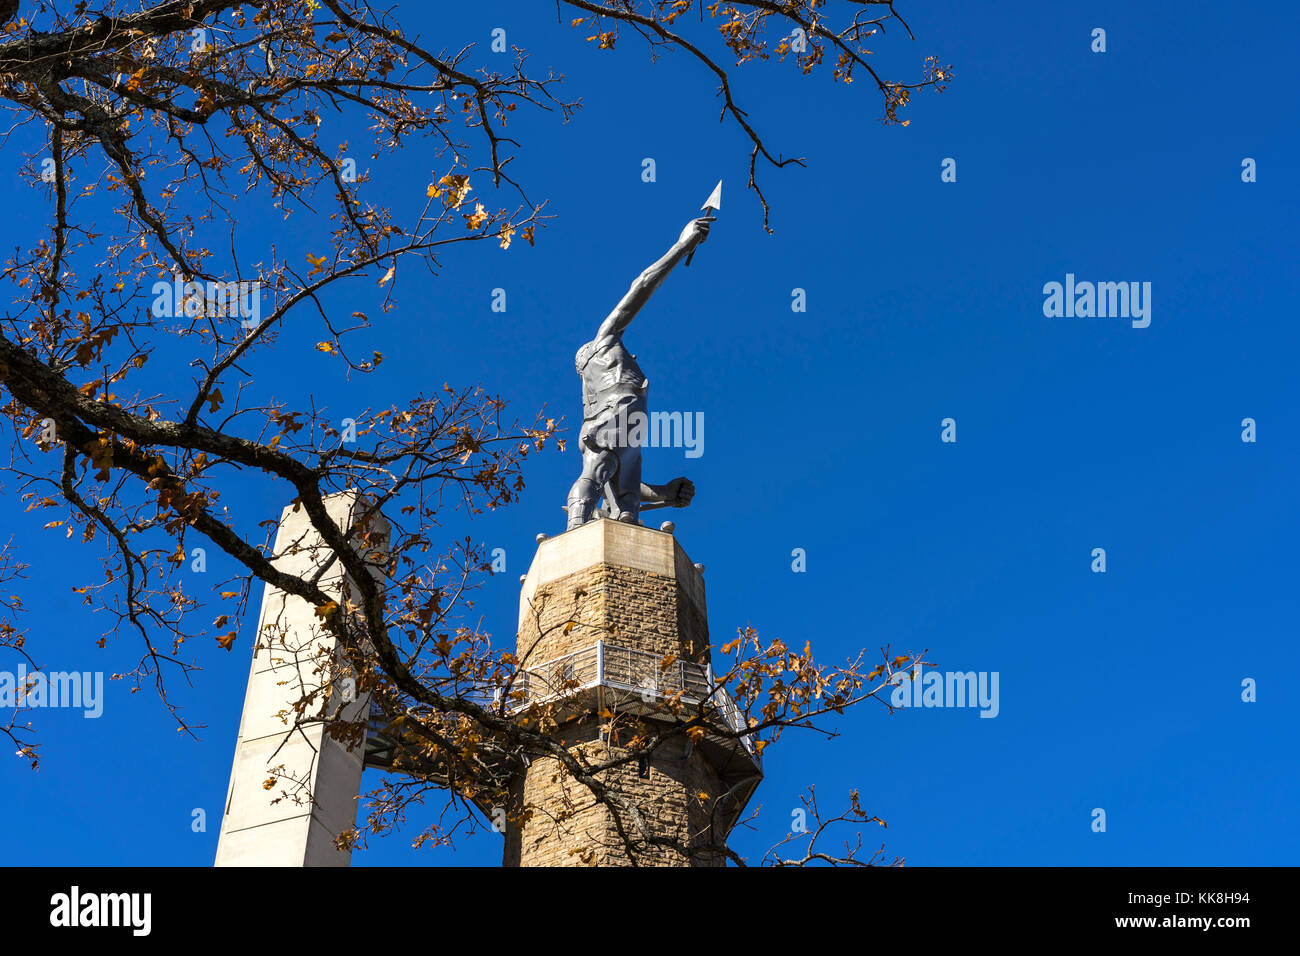 The Vulcan statue at Vulcan park in Birmingham, Al. stands tall against a crisp, blue fall sky. Stock Photo